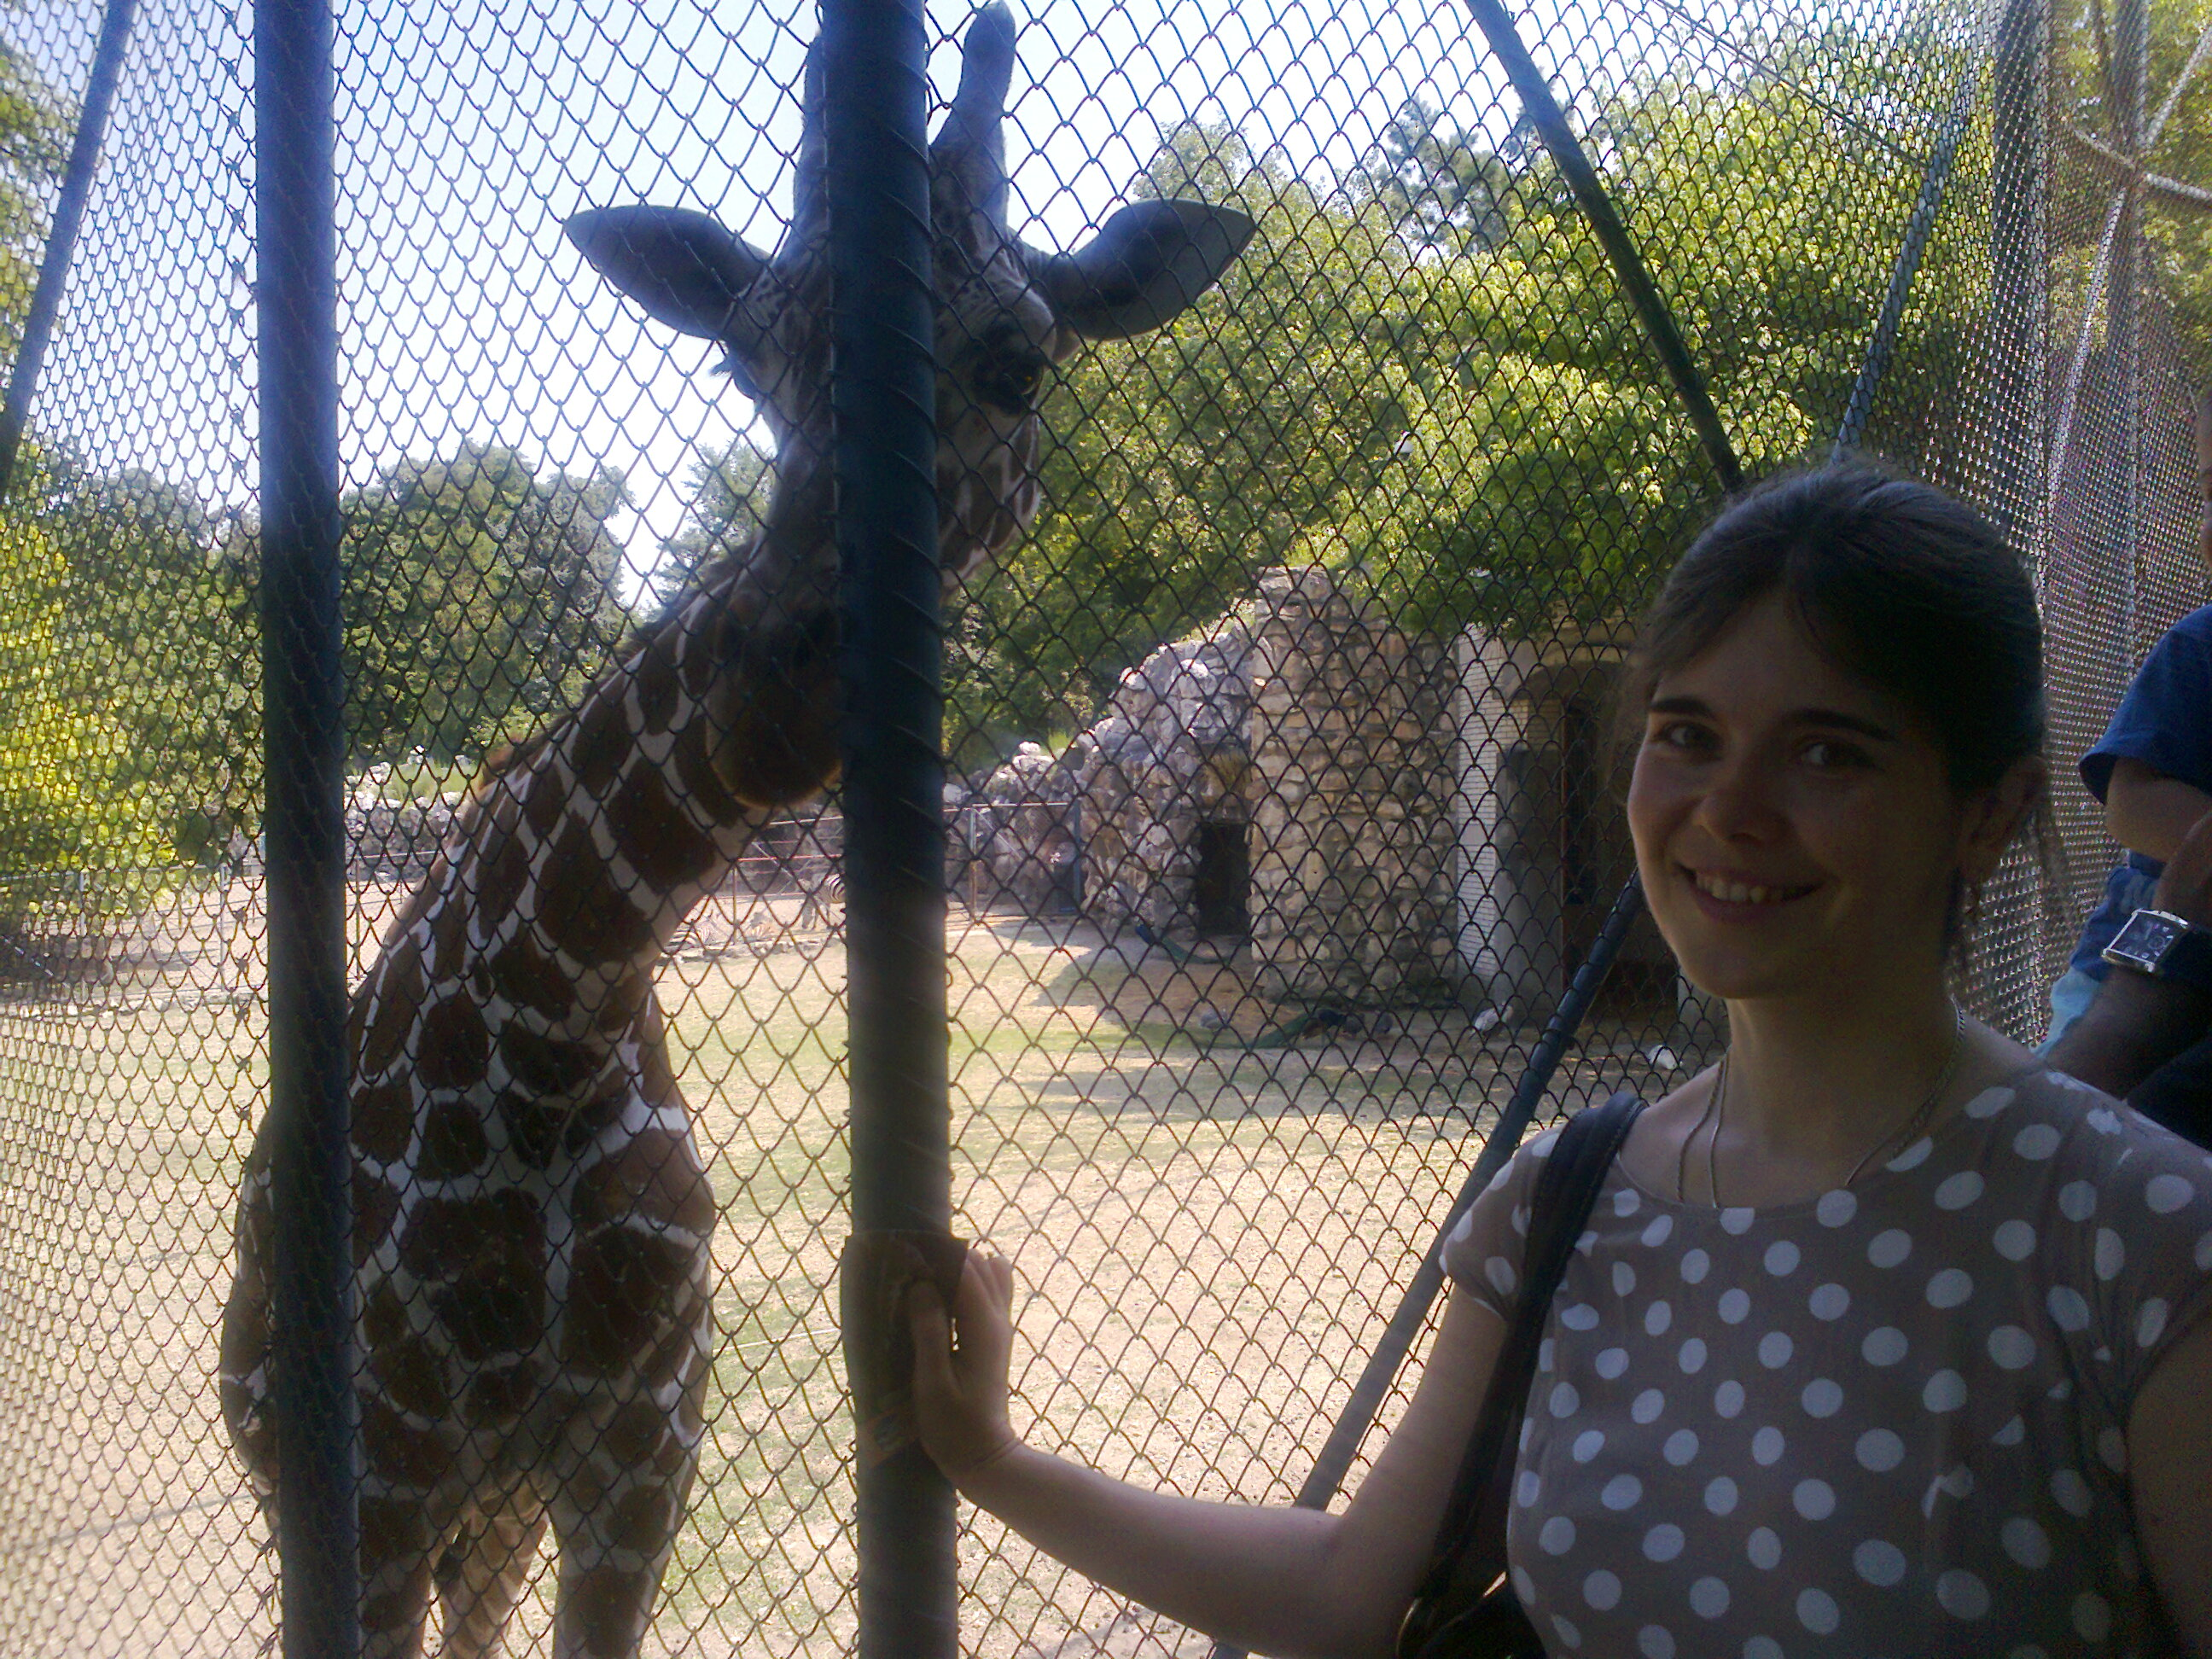 My-wife-and-a-Camelopard-in-Beograd-Zoo